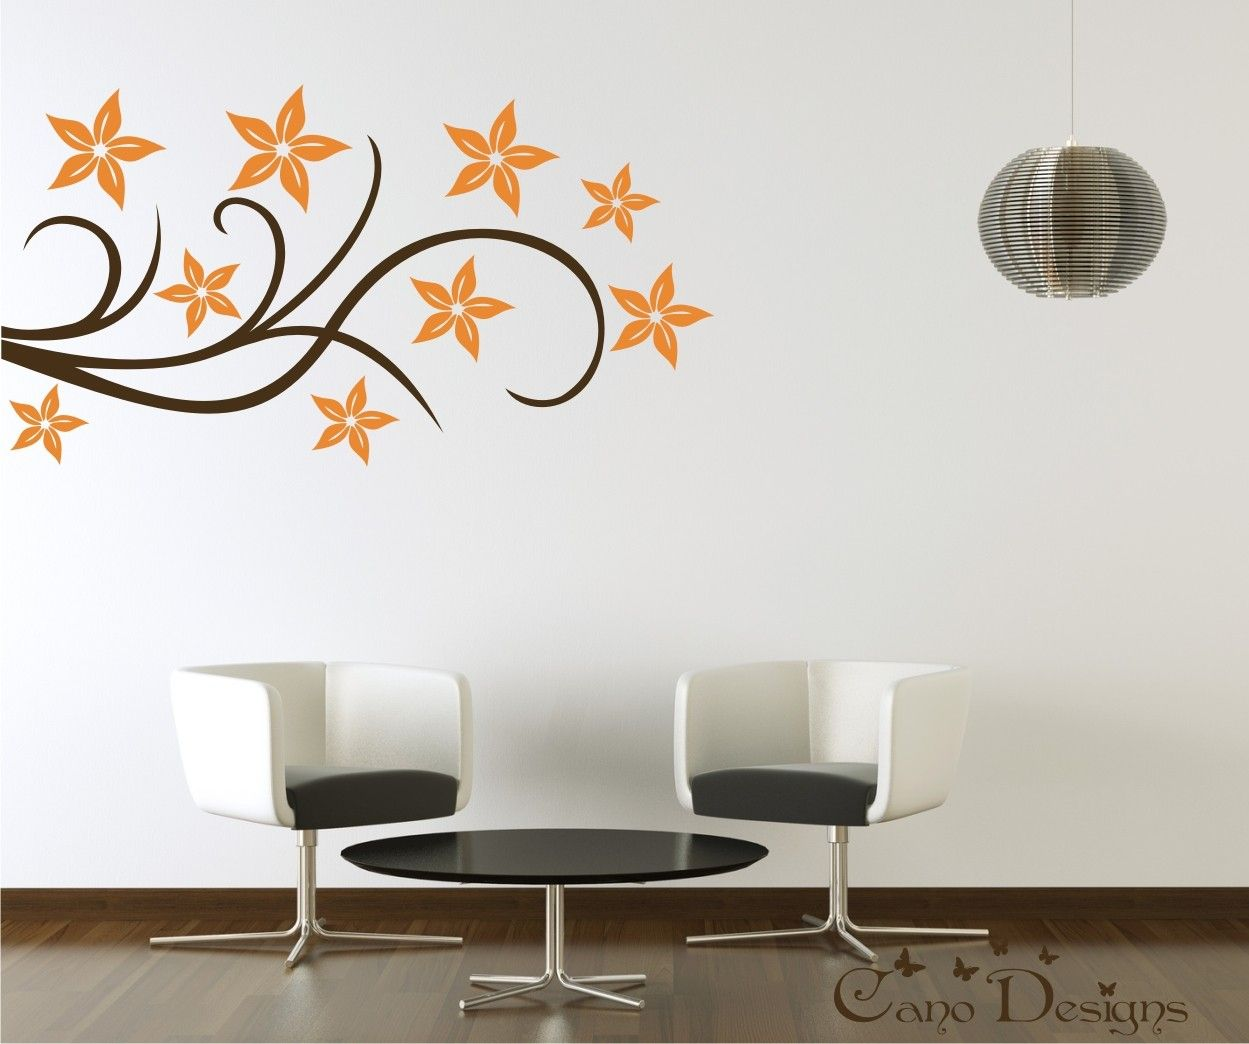 Stylish Modern Wall Decor Stickers Art Decals Vinyl Wall - Wall stickers decalswall decal wikipedia